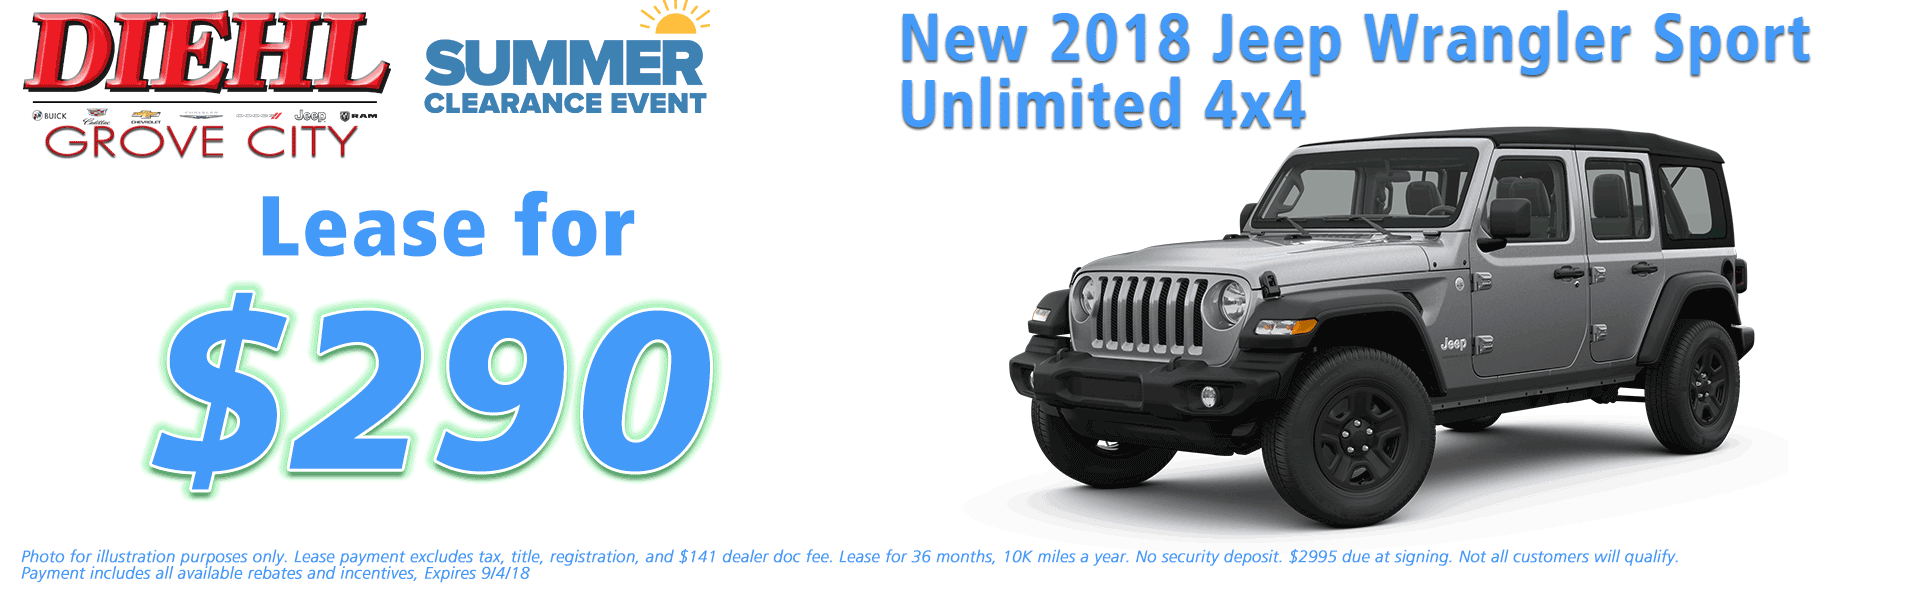 Diehl of Grove City, Grove City, PA 16127 Chrysler Jeep Dodge Ram Chevrolet Buick Cadillac NEW 2018 JEEP WRANGLER UNLIMITED SPORT 4X4